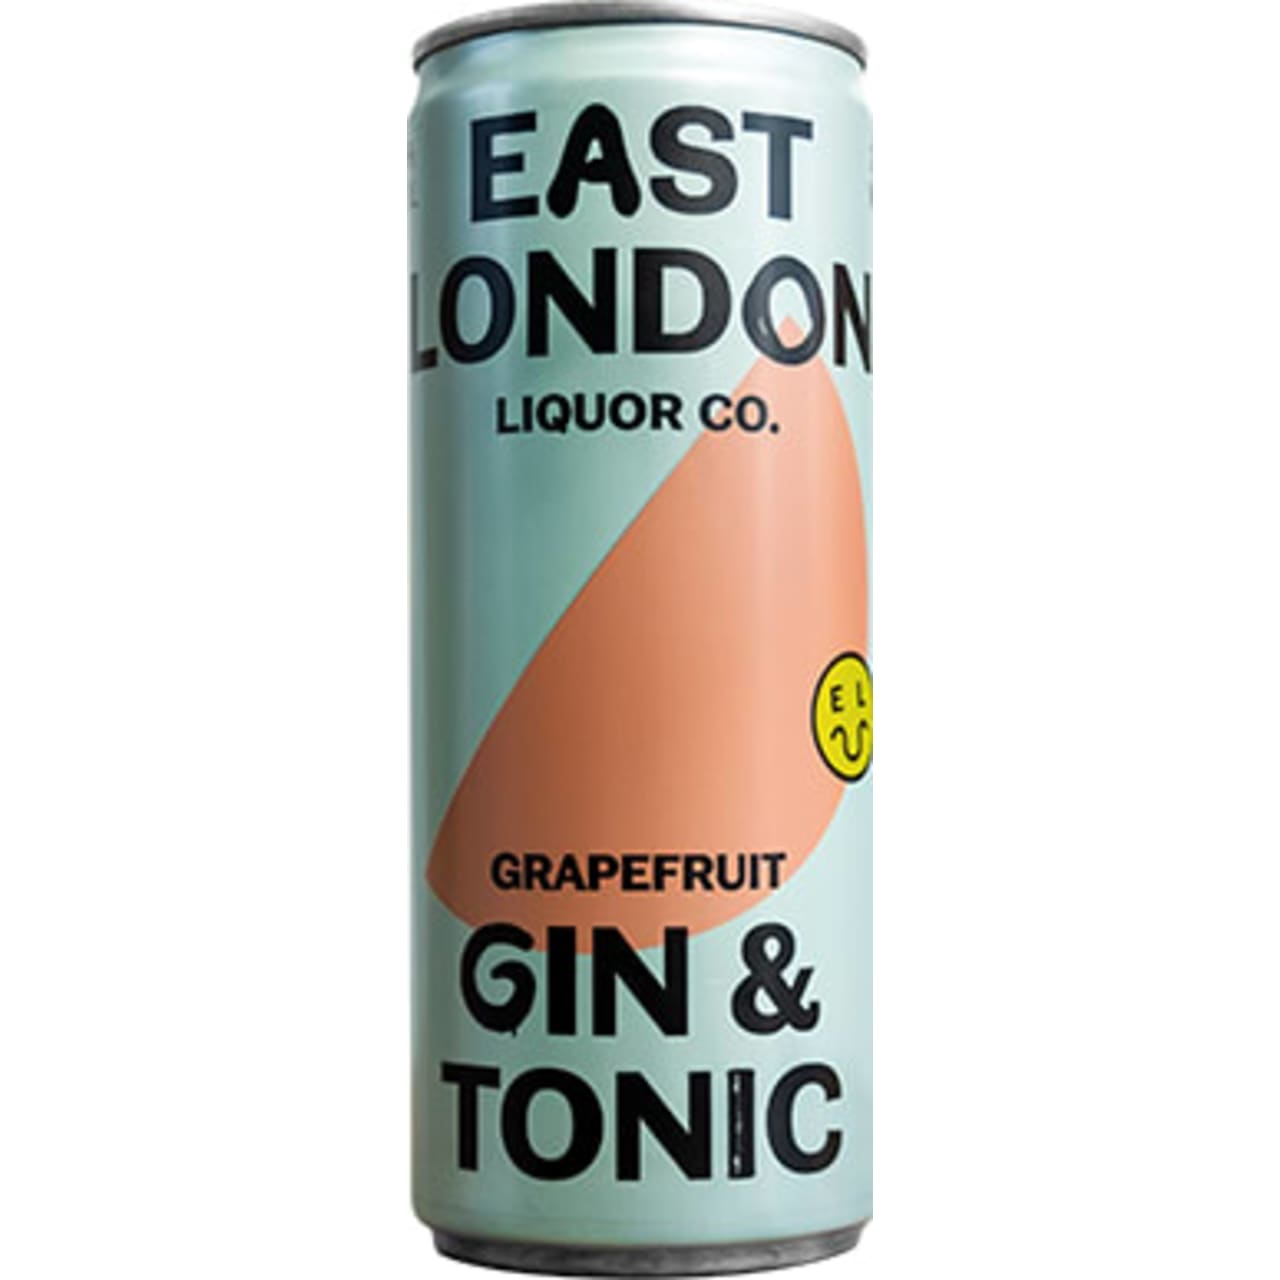 Product Image - ELLC Grapefruit Gin & Tonic Can